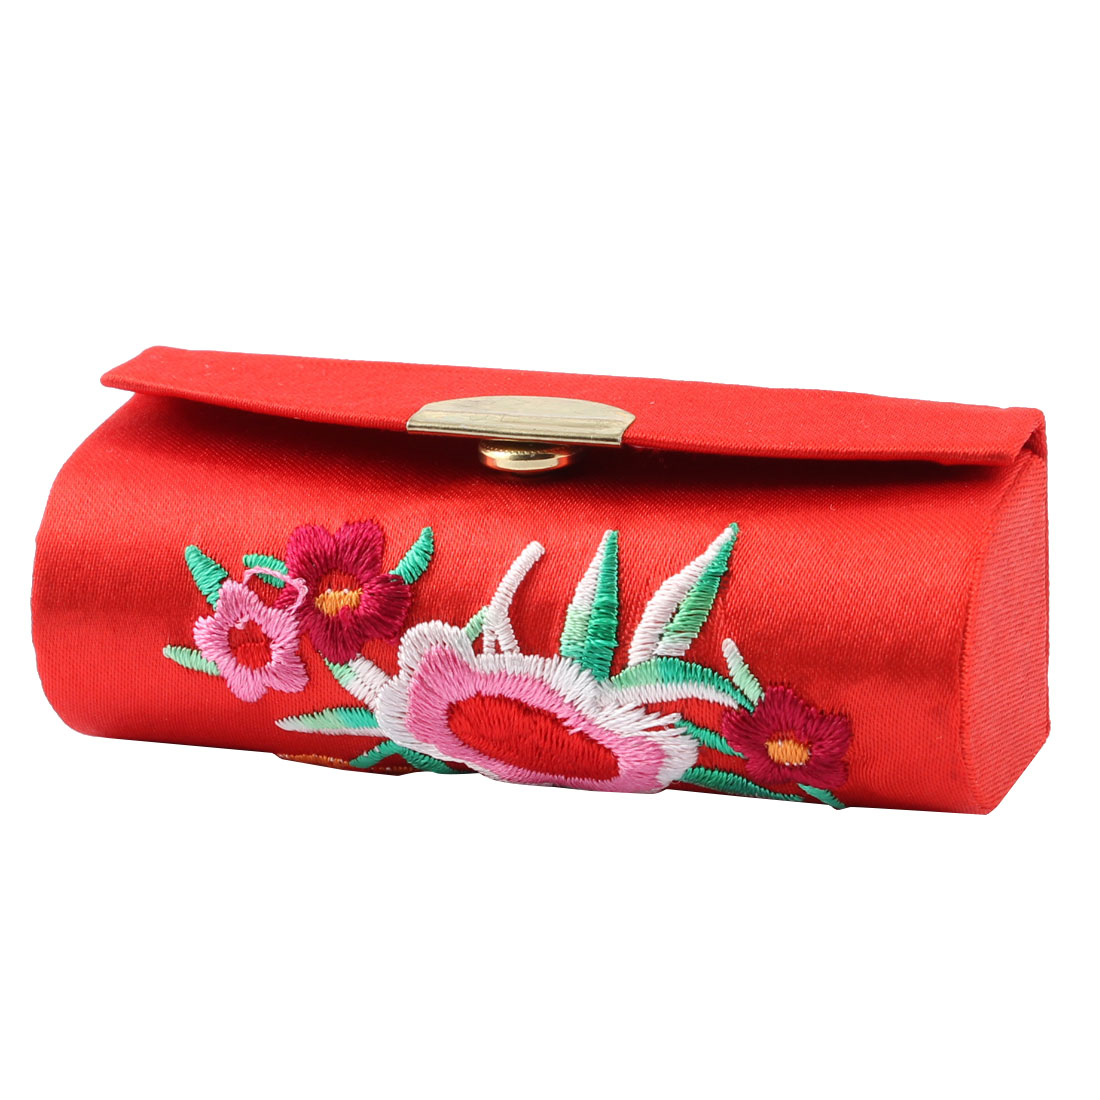 Metal Button Floral Chinese Embroidery True Red Lipstick Case + Mirror